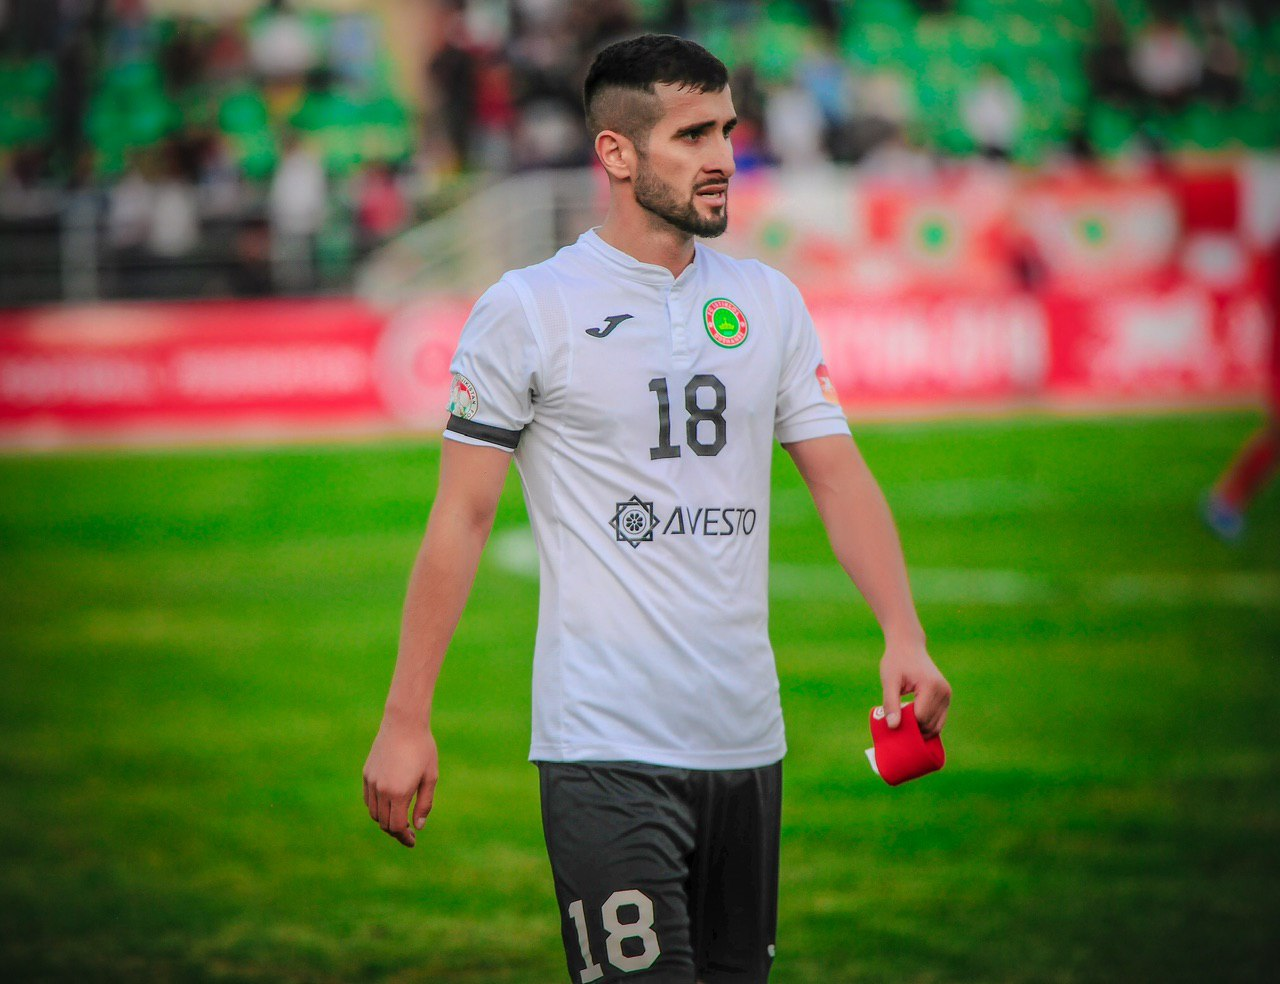 New Chennaiyin FC winger Fatkhullo Fatkhuloev creating ripples back home with India move!